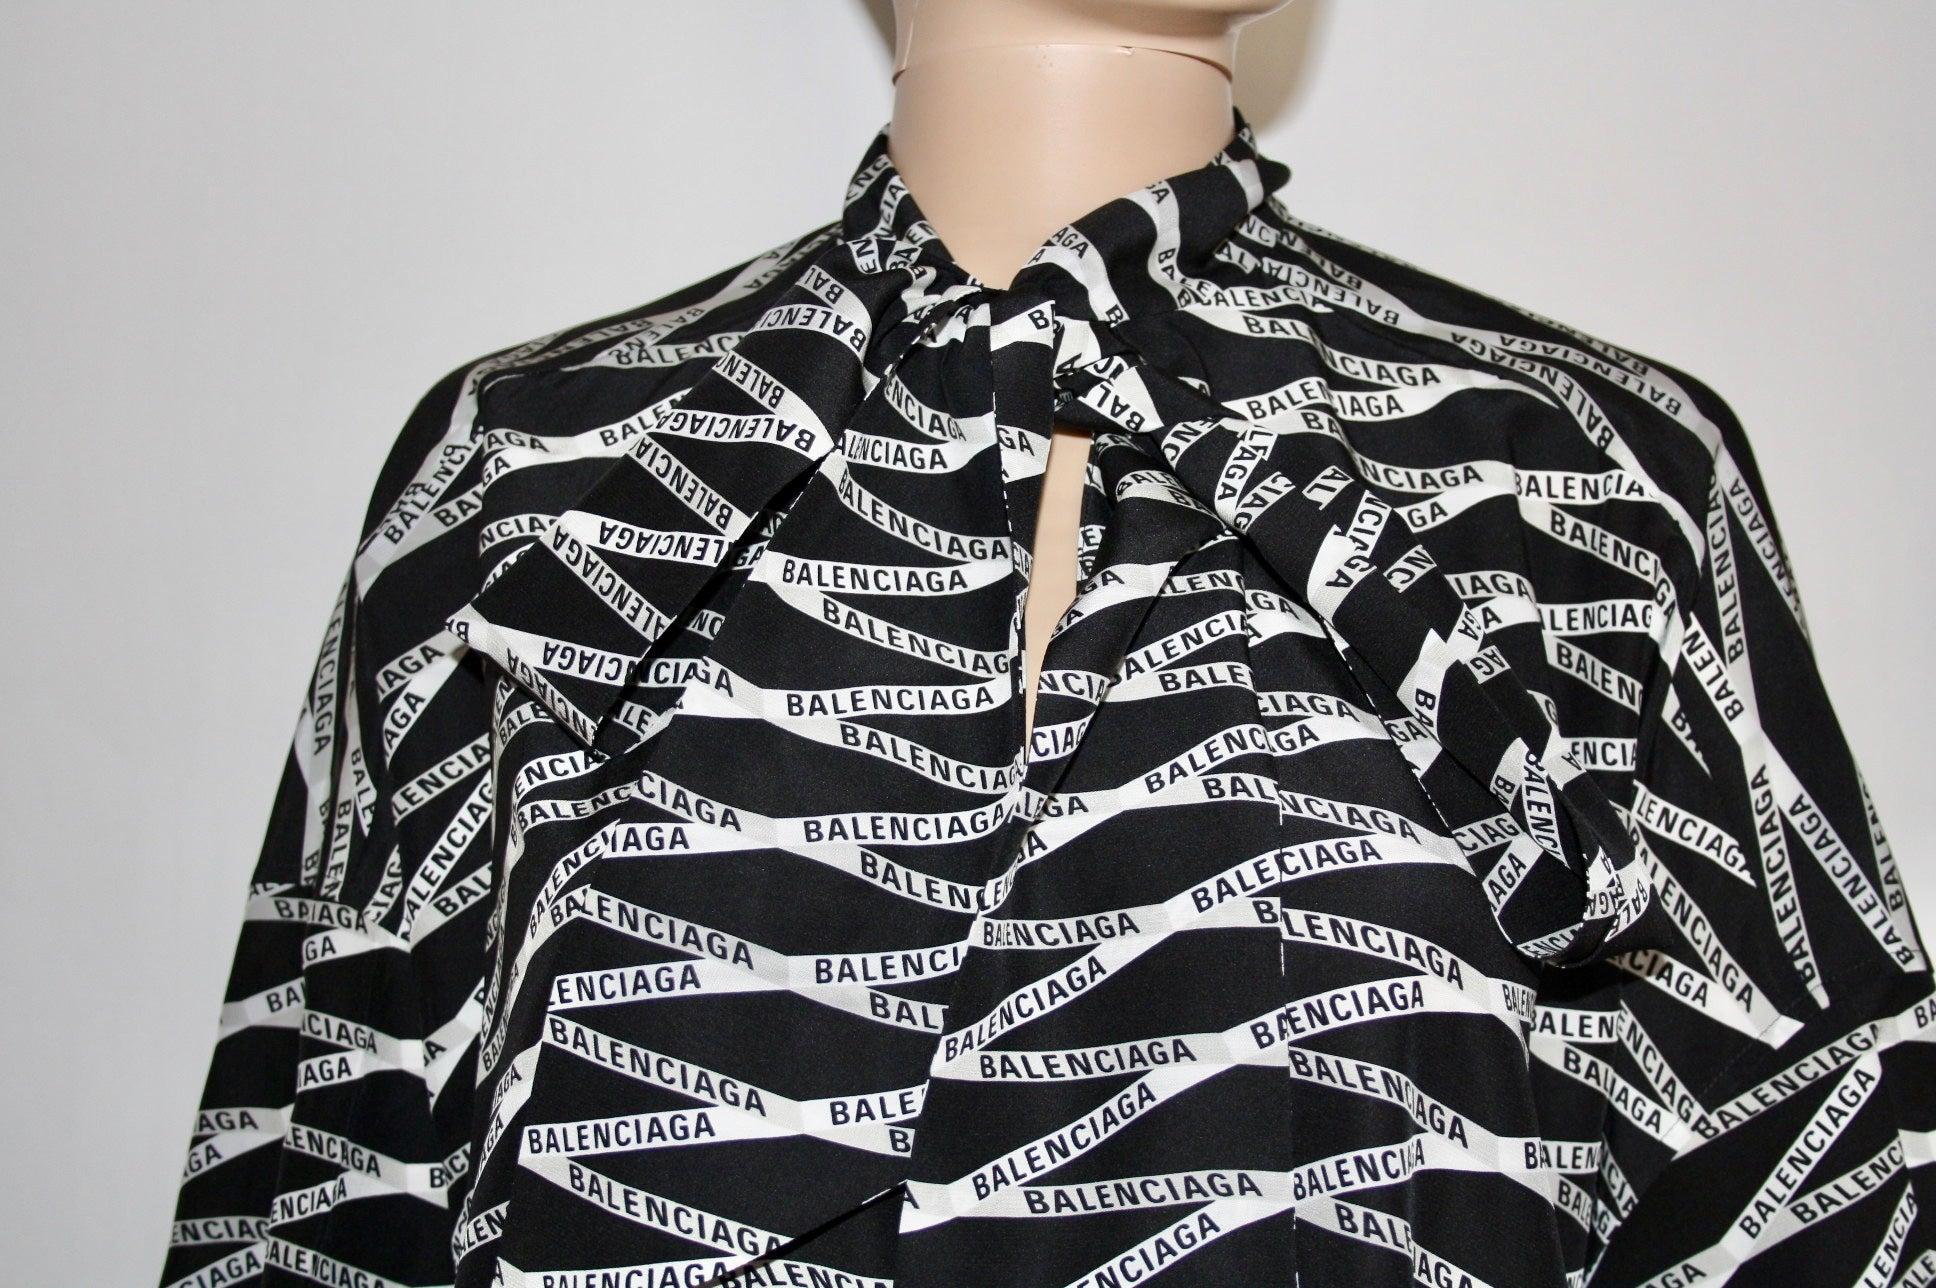 Balenciaga Logo-print Silk blouse, S - Iconics Preloved Luxury